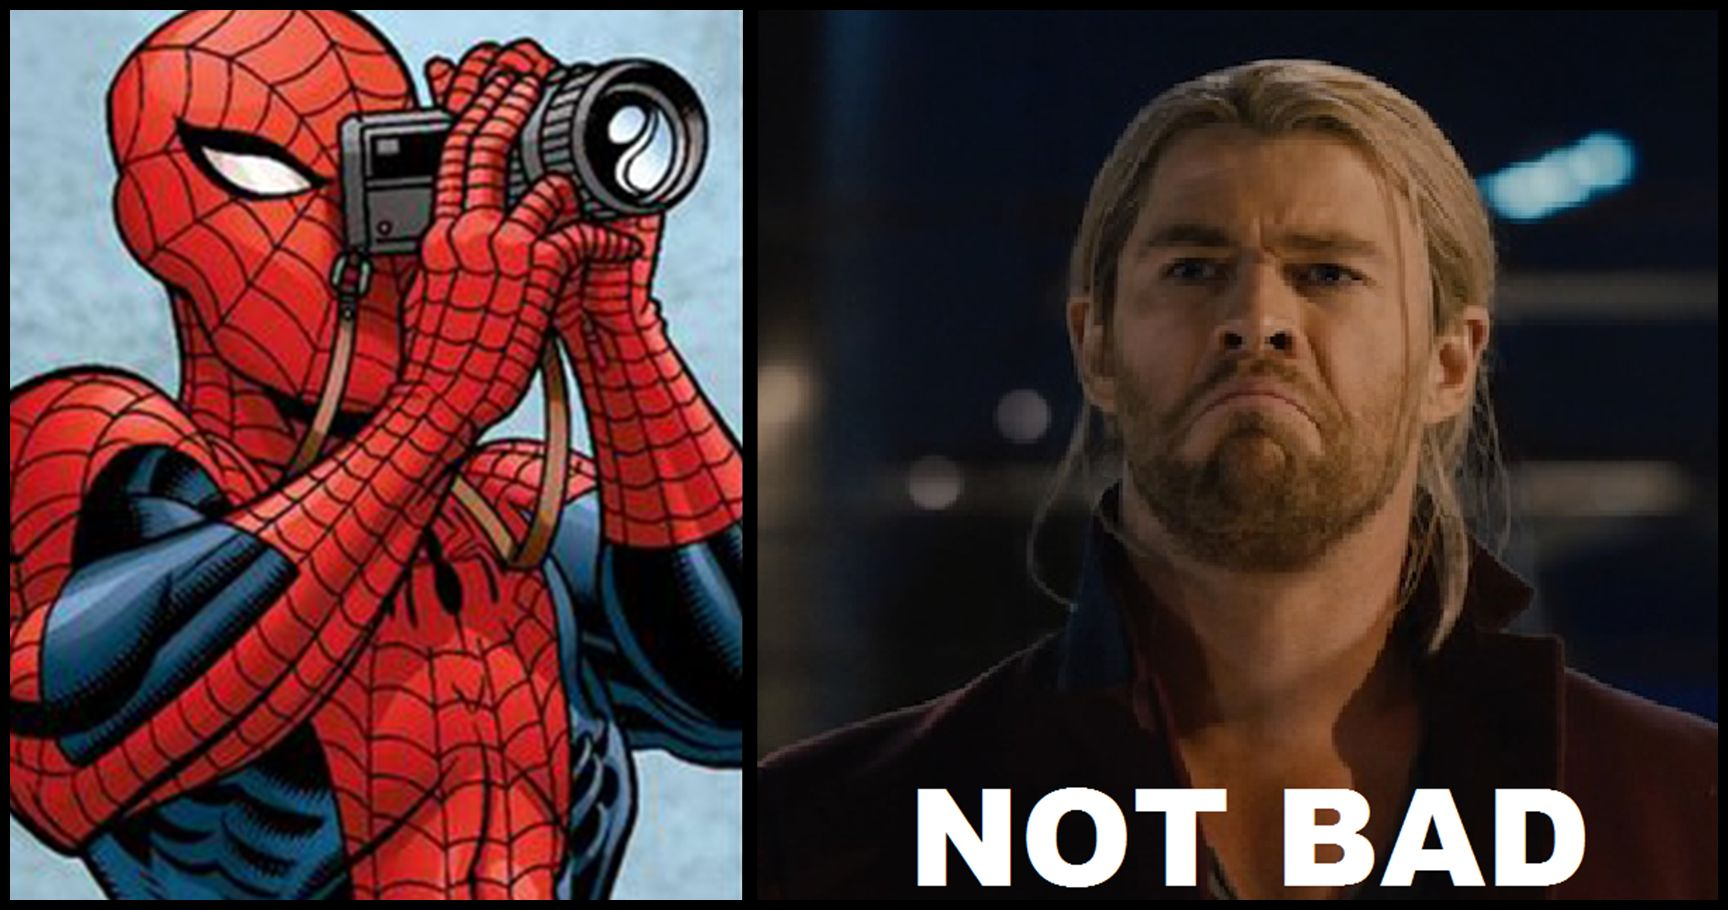 15 Biggest Differences Between Marvel Movies And Comics